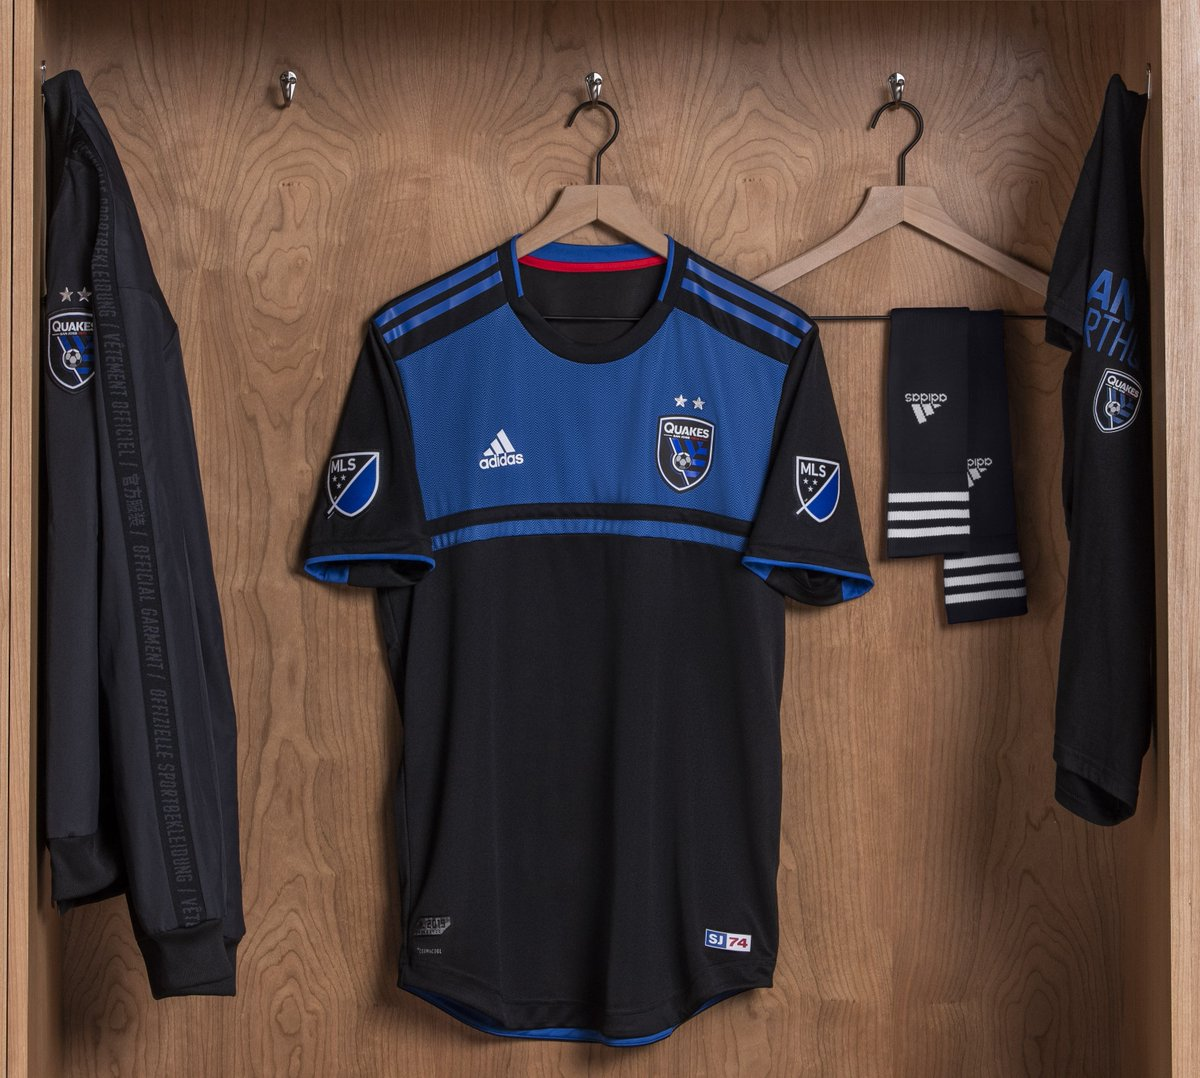 new product 0bc0a 778c3 San Jose Earthquakes 2019 adidas Home Kit - FOOTBALL FASHION.ORG